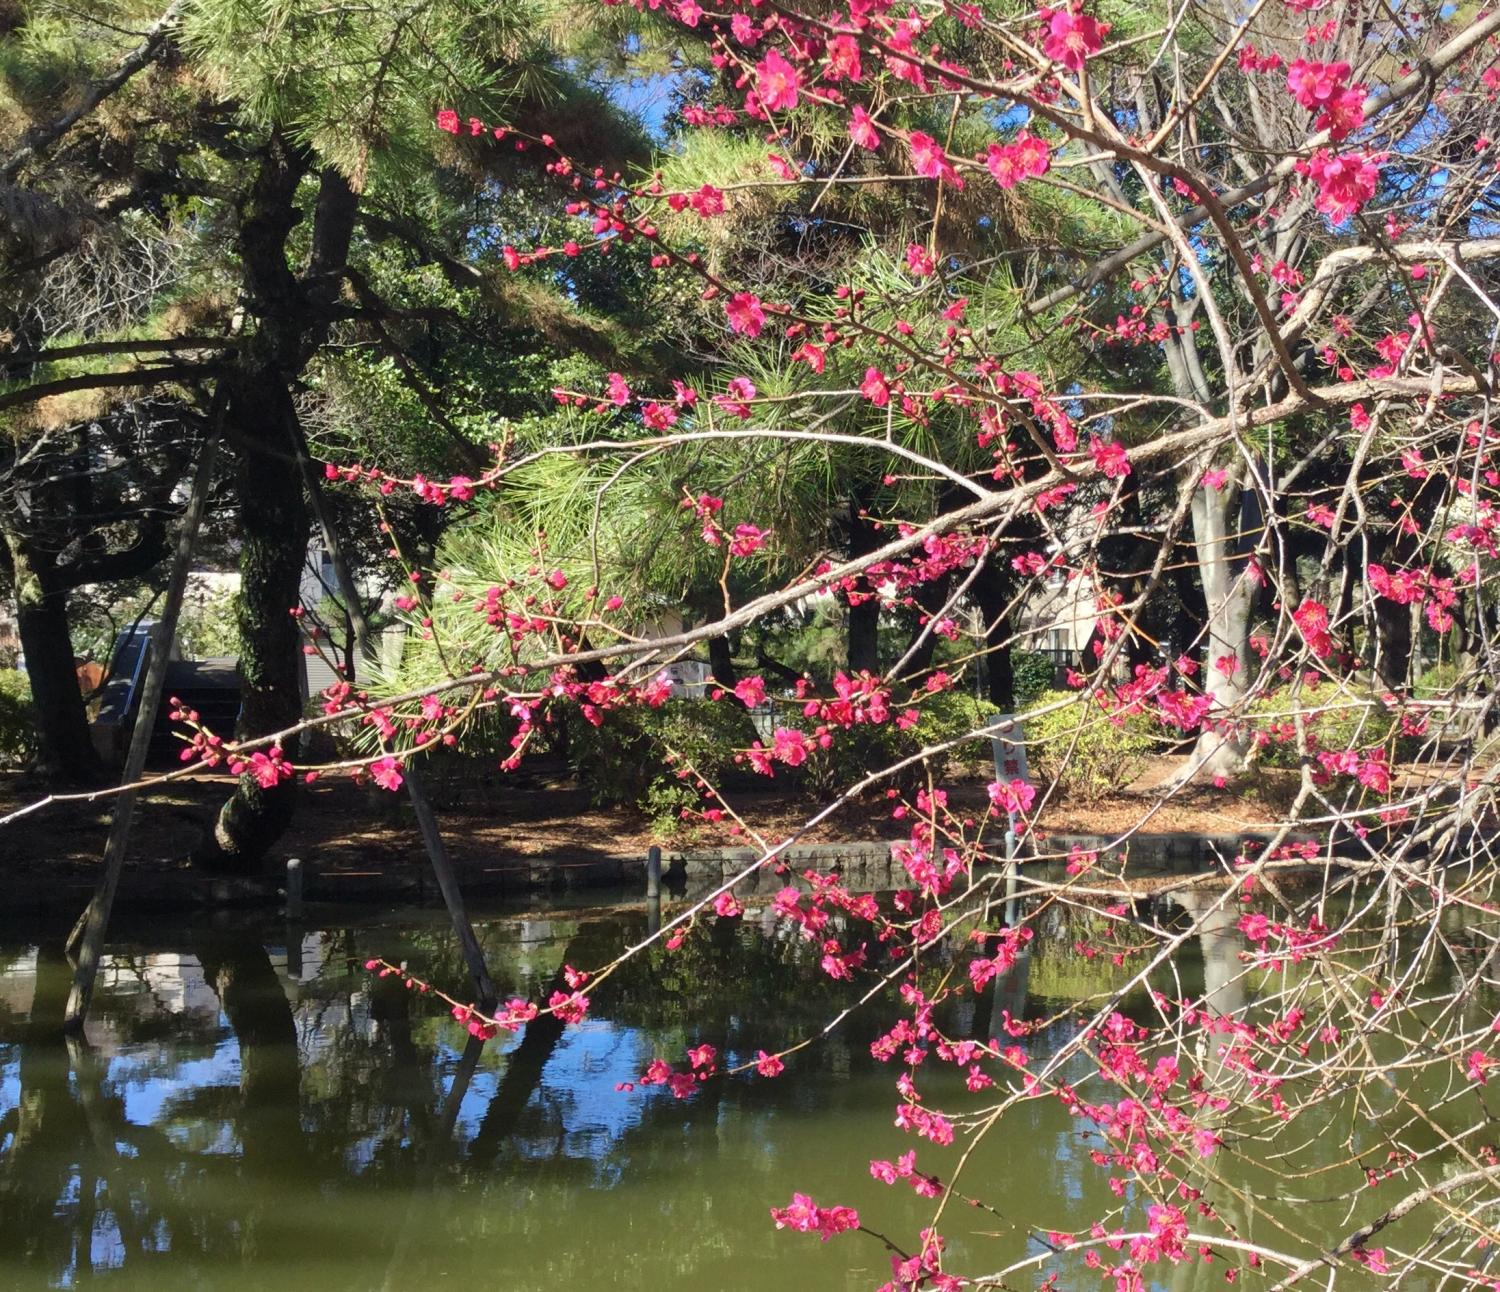 Japanese apricot with red blossoms is at their best